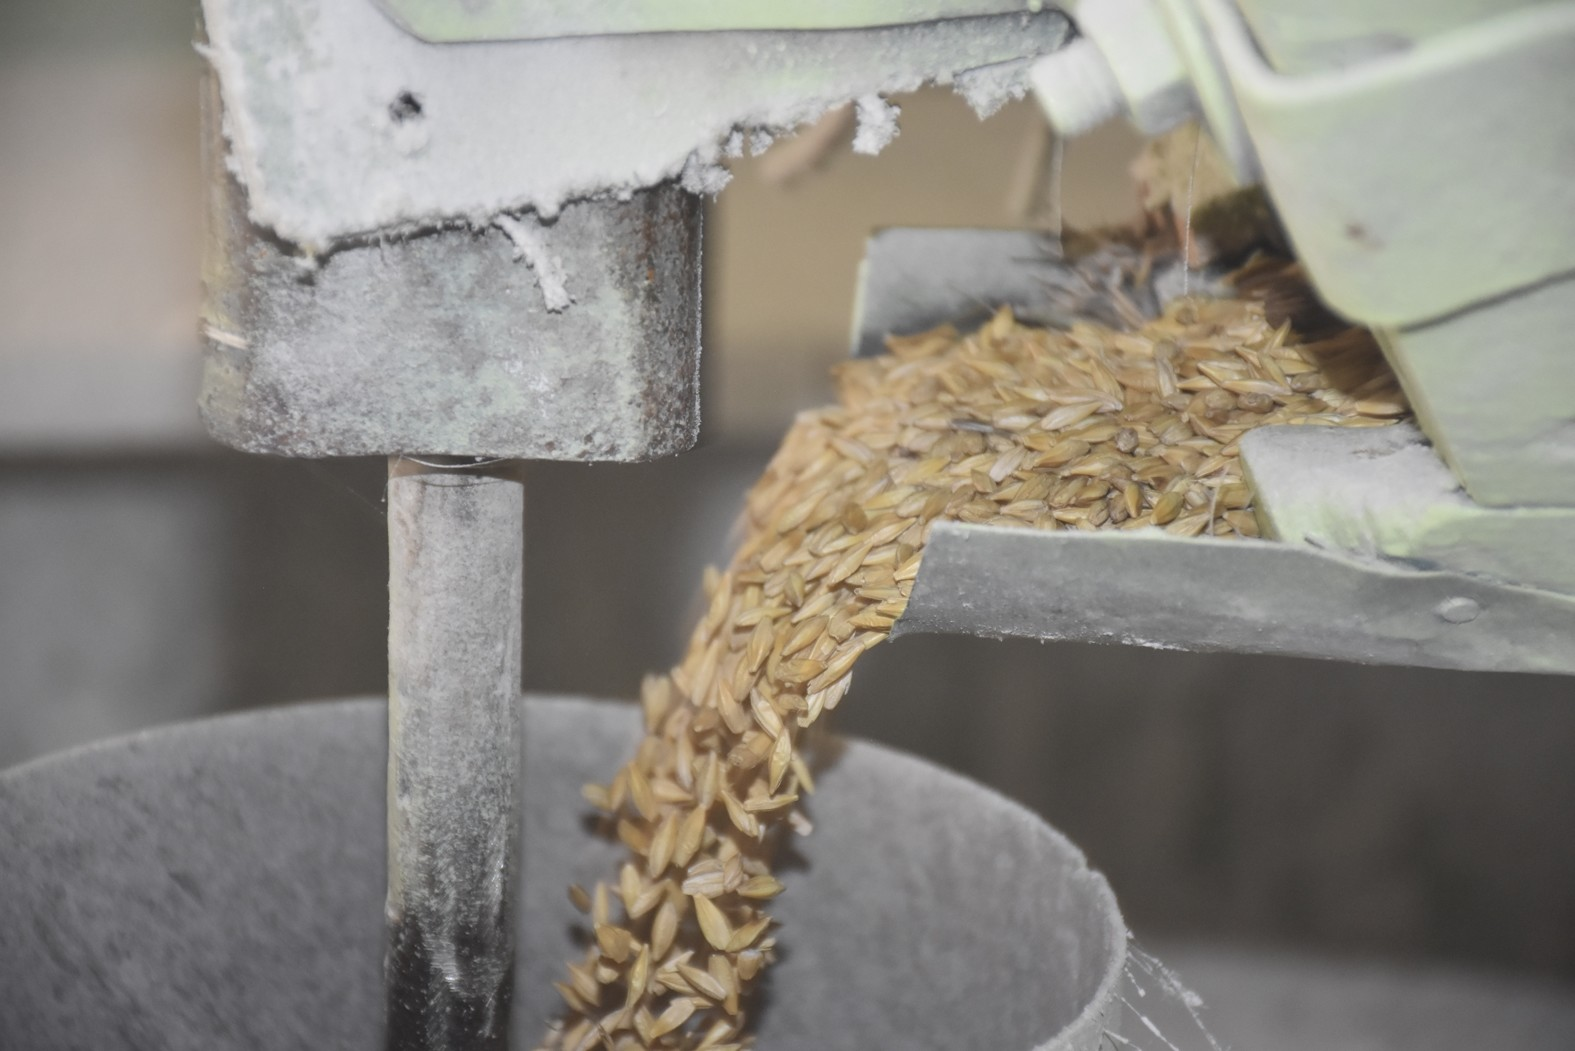 The mill grinds between 150 and 500 tons of grains every year. Especially after the harvesting season, people queue up in front of the mill.